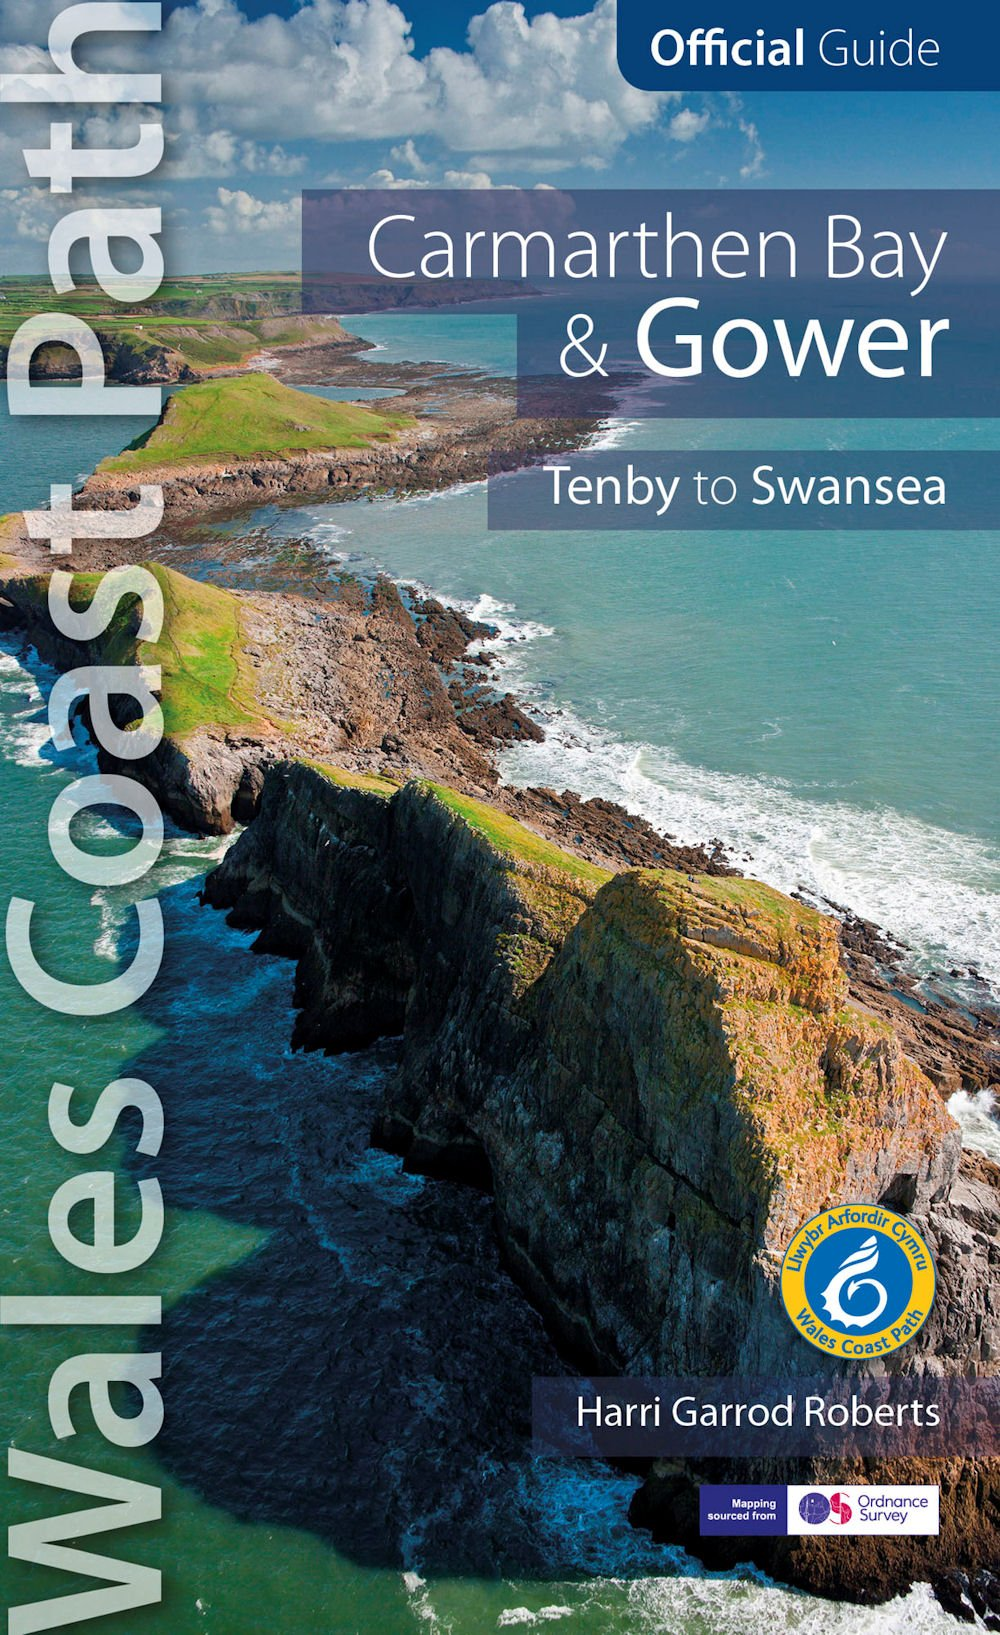 Carmarthen Bay  Gower Wales Coast Path Official Guide Tenby to